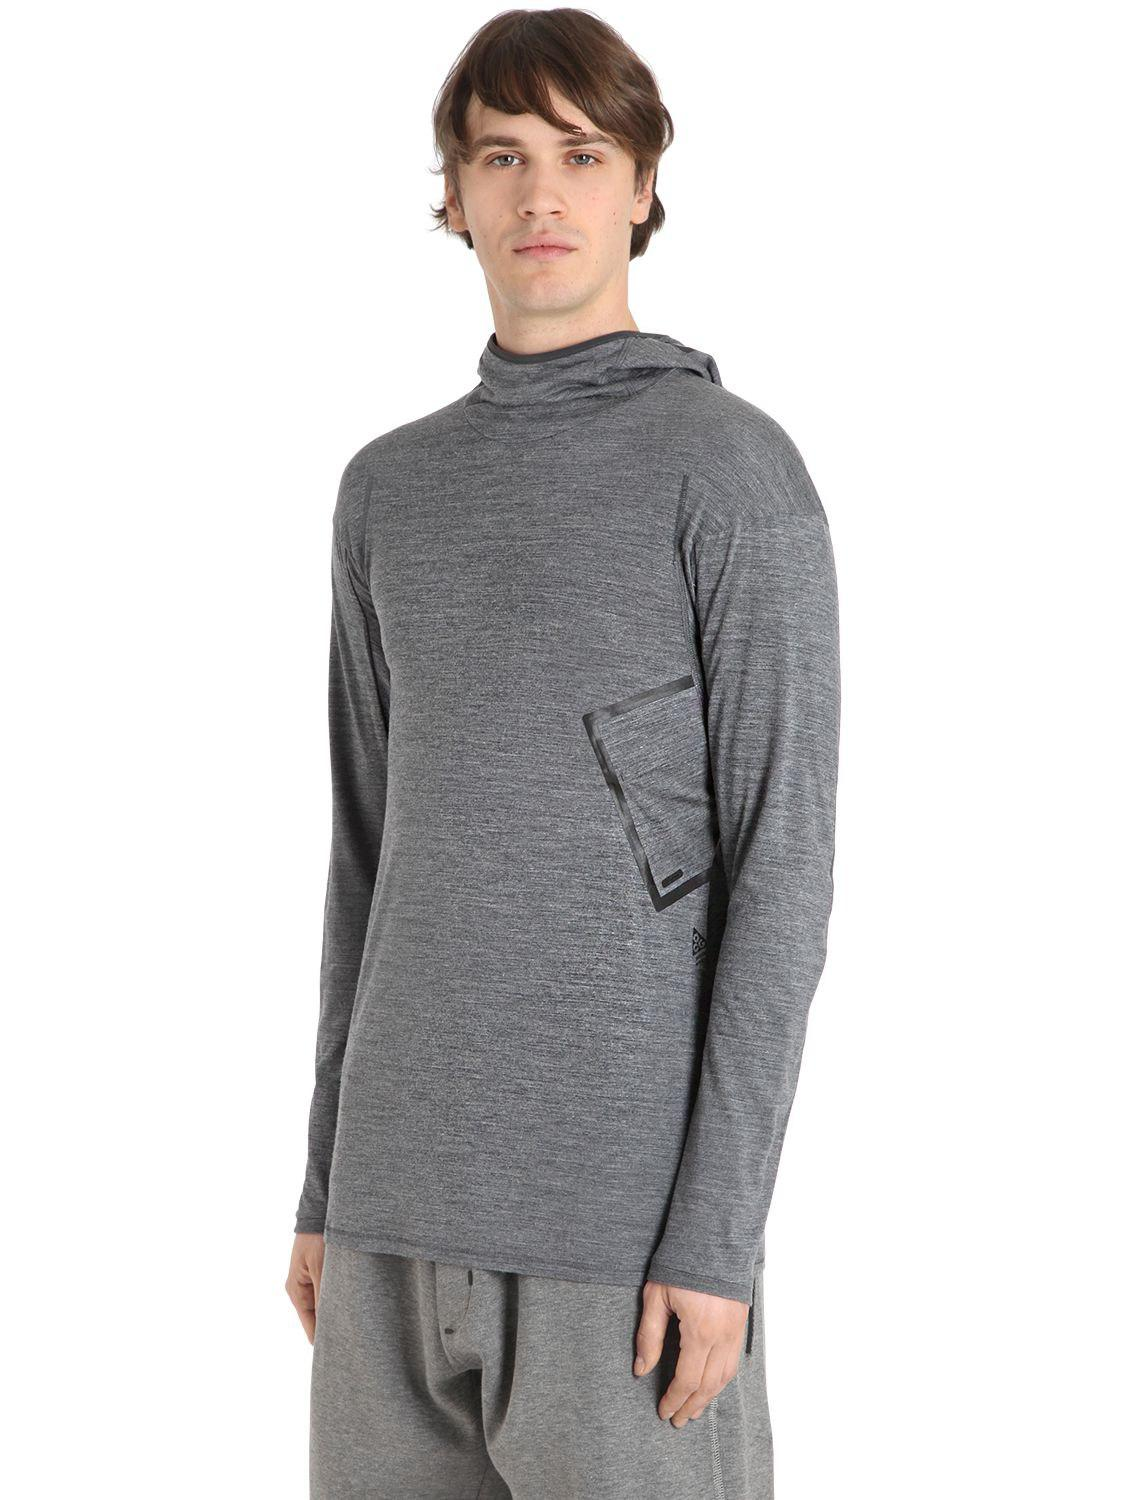 8e0e40ca0 Nike Nikelab Acg Inversion Wool Blend Top in Gray for Men - Lyst